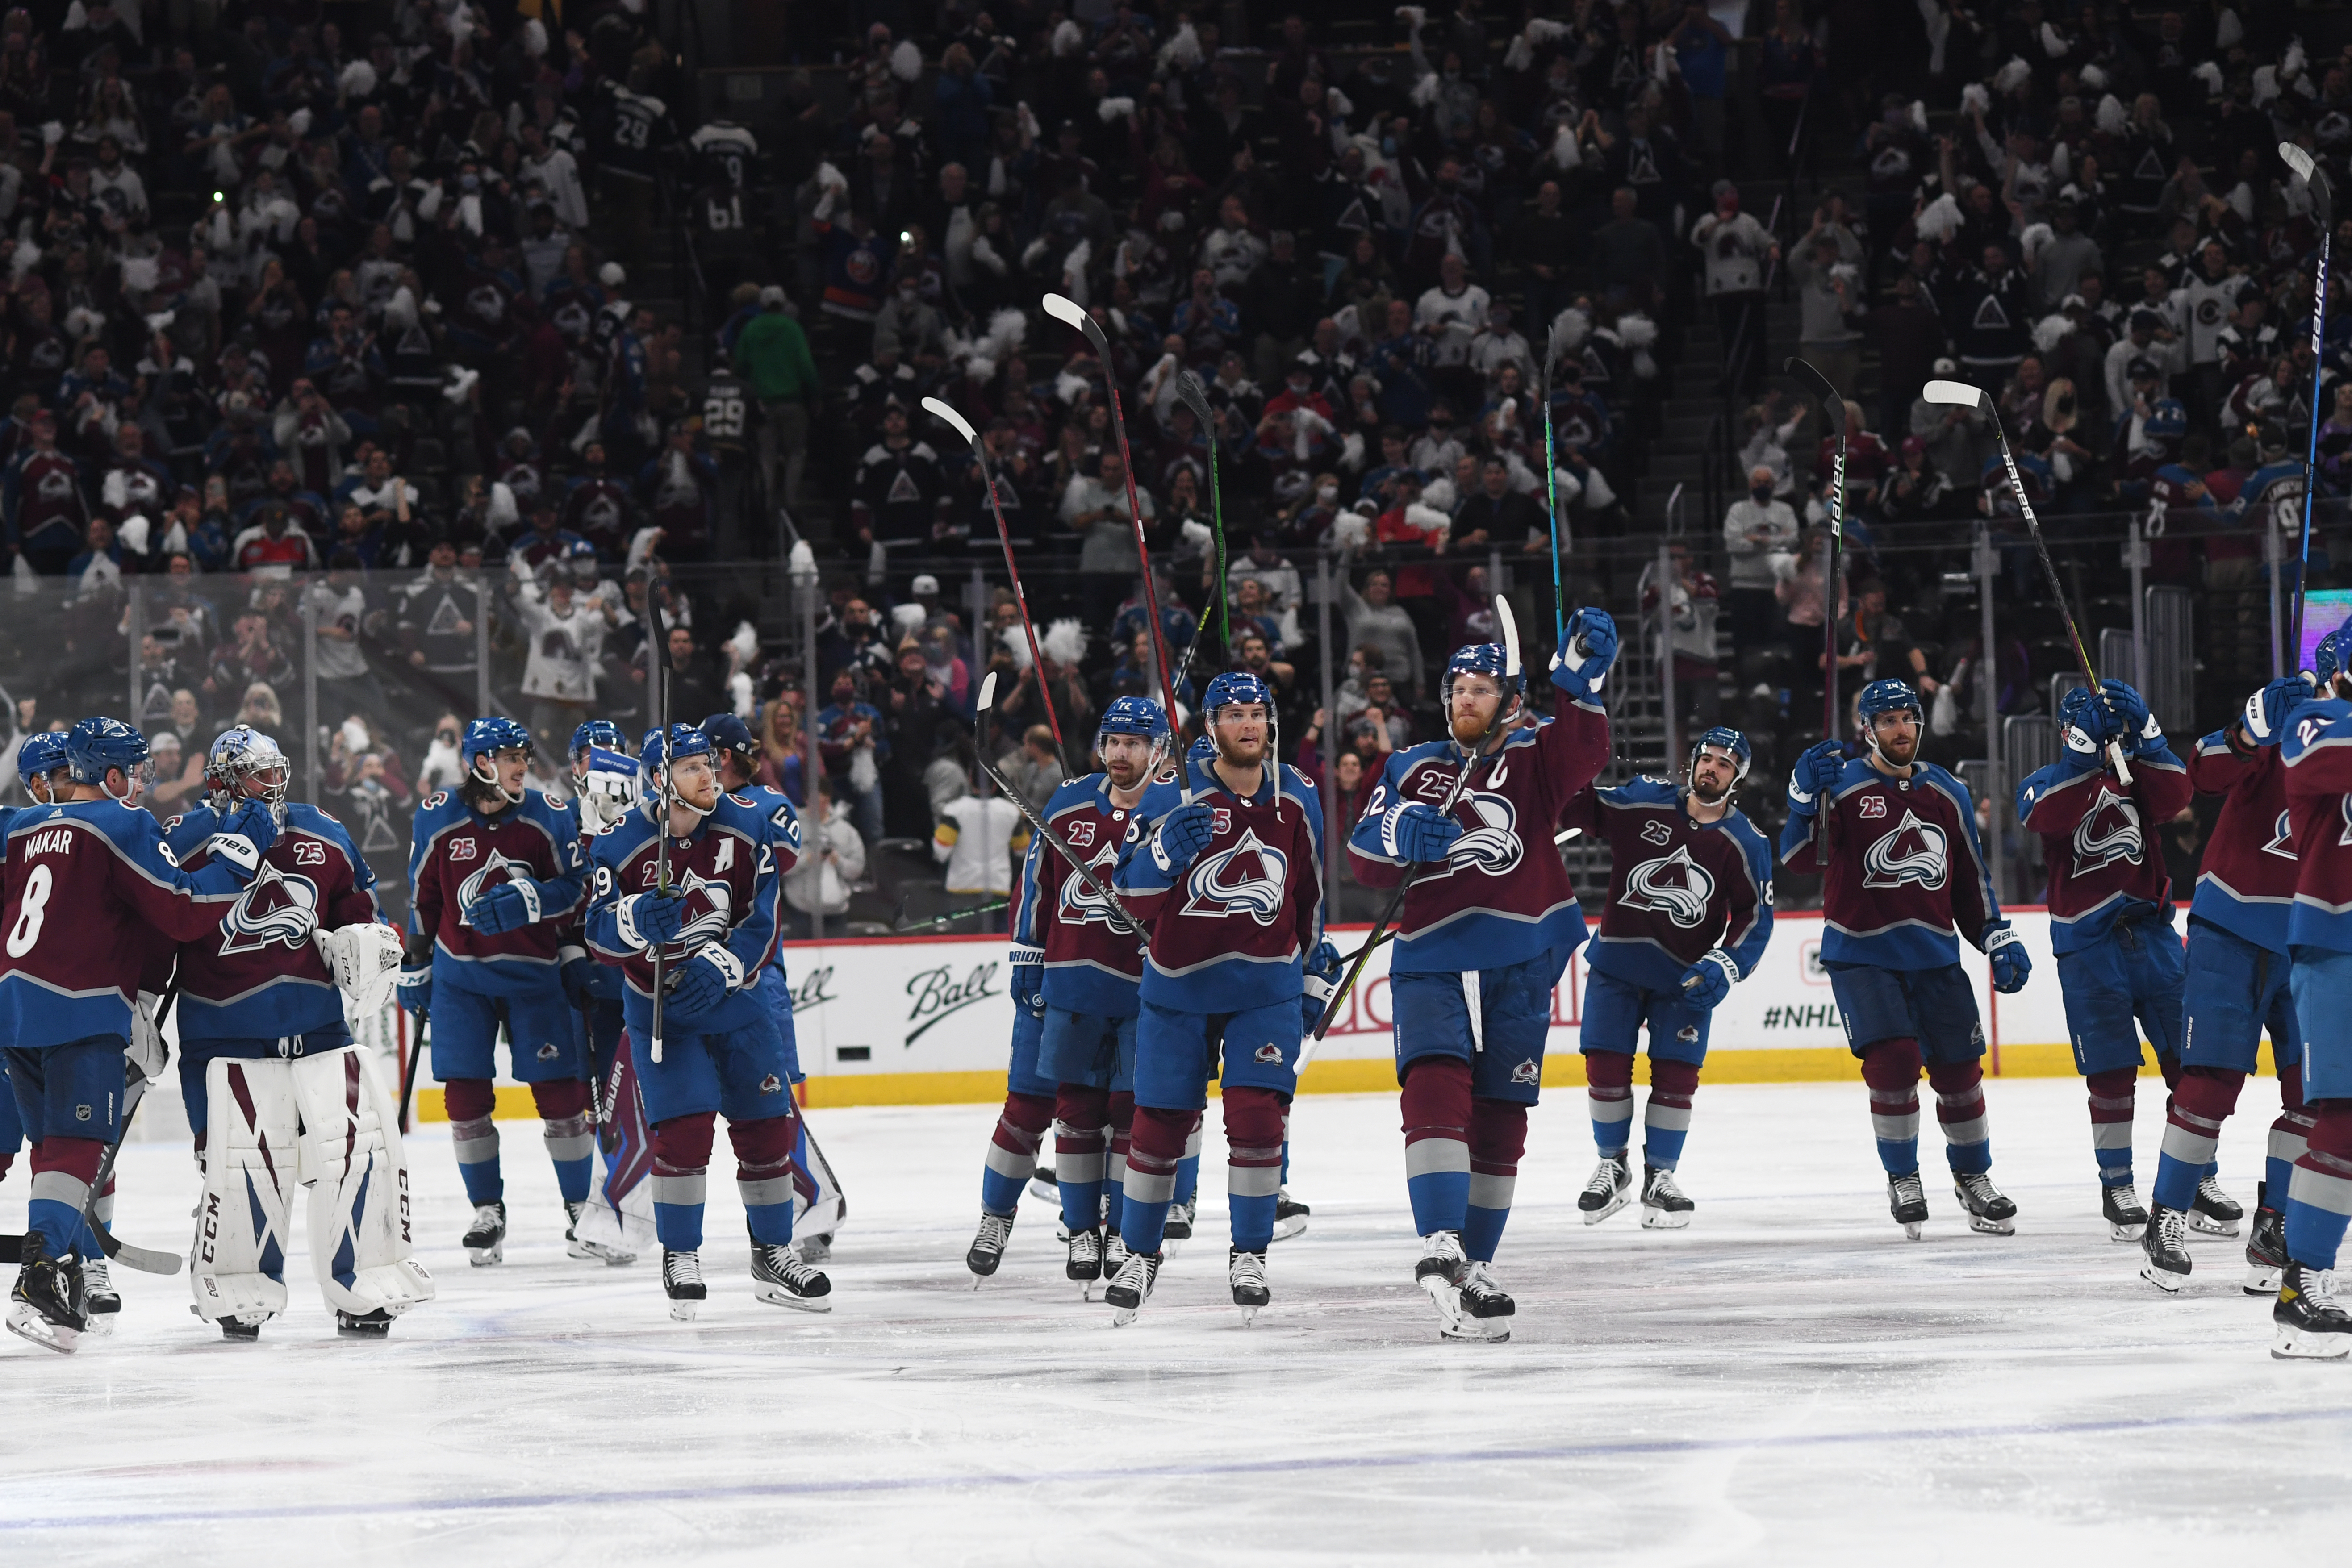 The Colorado Avalanche celebrate a game winning goal during the OT of game 2 in the second round of the Stanley Cup Playoff series on June 2, 2021 in Denver, Colorado. Colorado Avalanche, at home in Ball Arena, took on the Vegas Golden Knights.